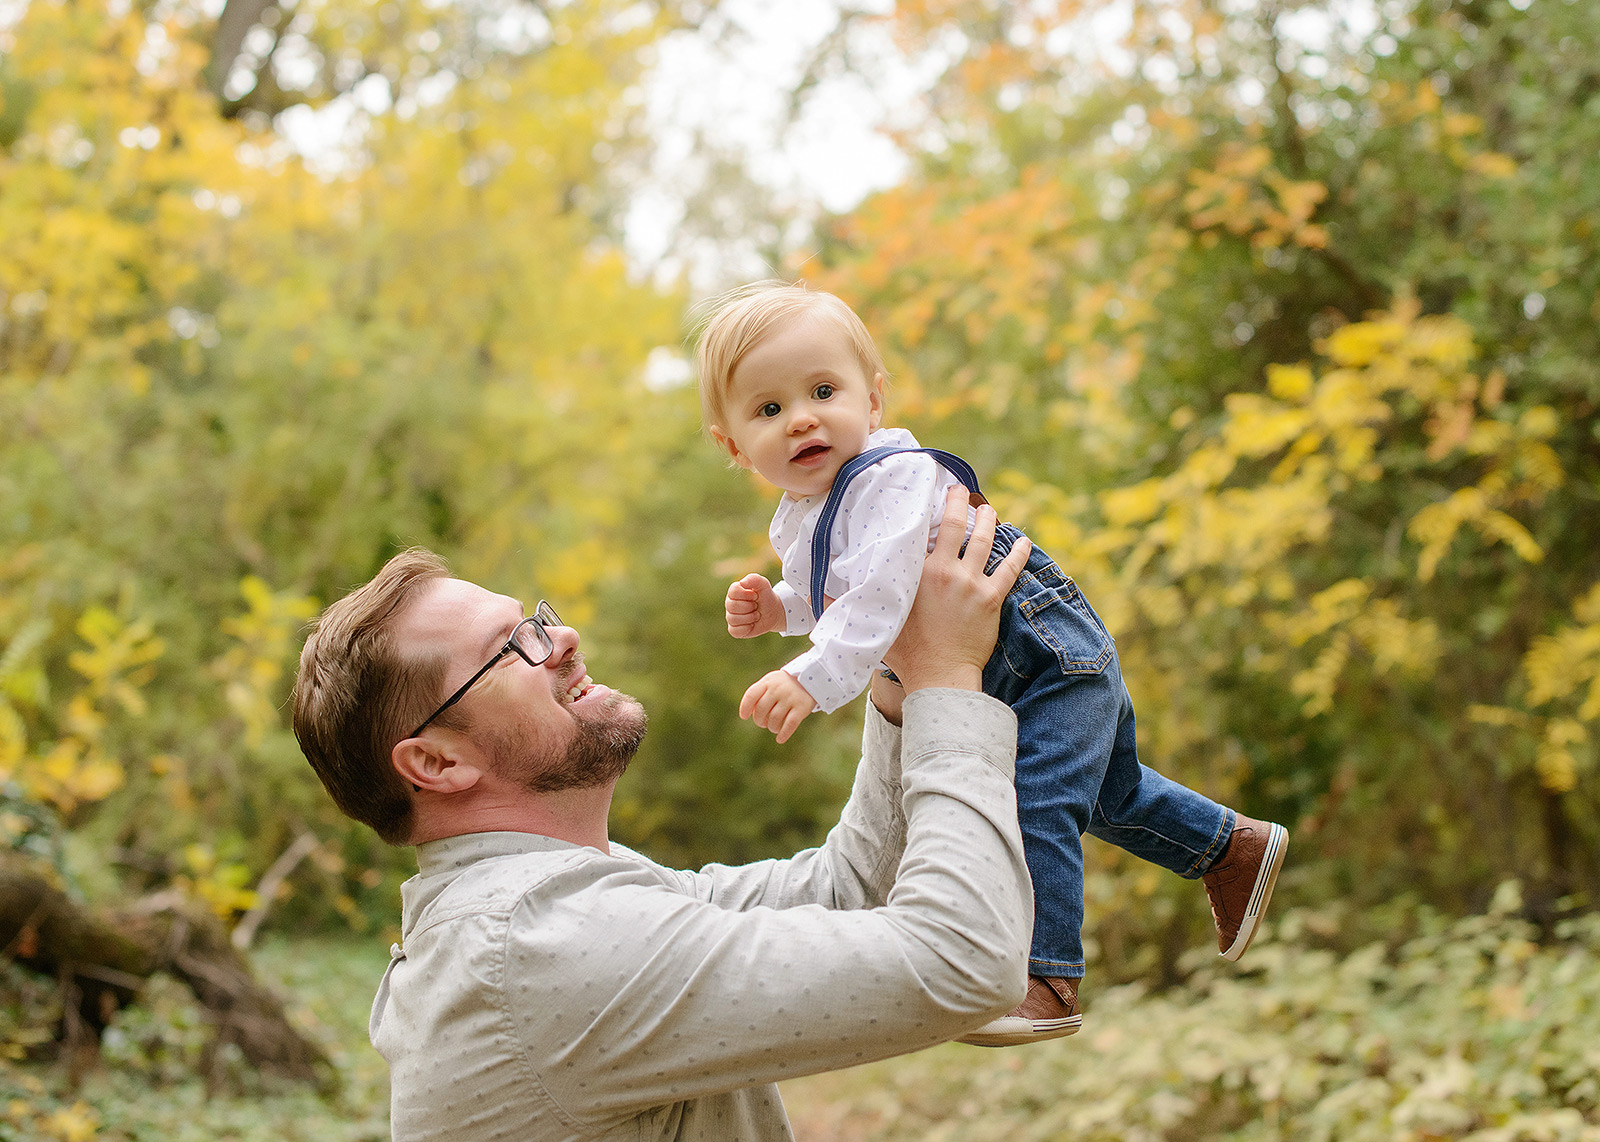 Father Lifting Baby Boy in Air Against Tree Foliage